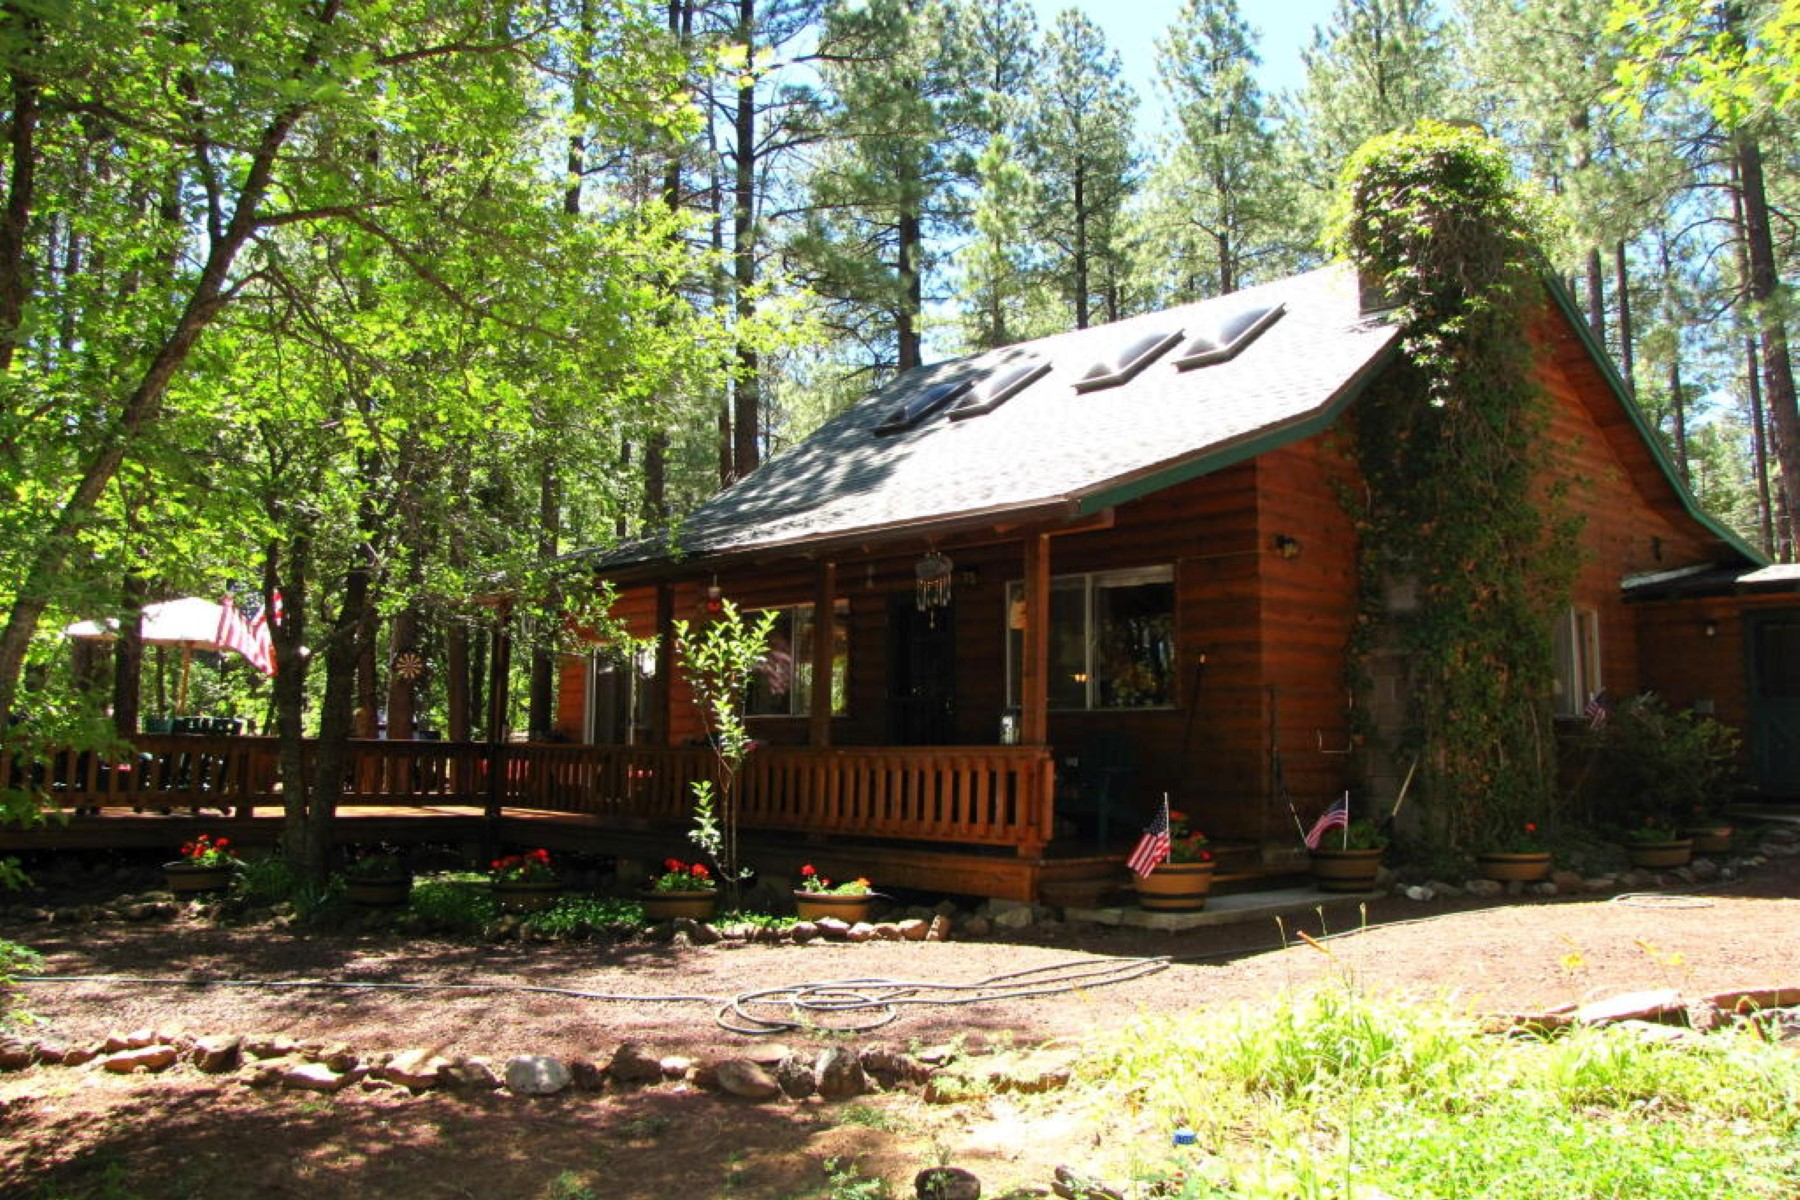 Moradia para Venda às Charming and updated cabin in White Mountain Summer Homes 2137 Jackrabbit Dr Pinetop, Arizona, 85935 Estados Unidos